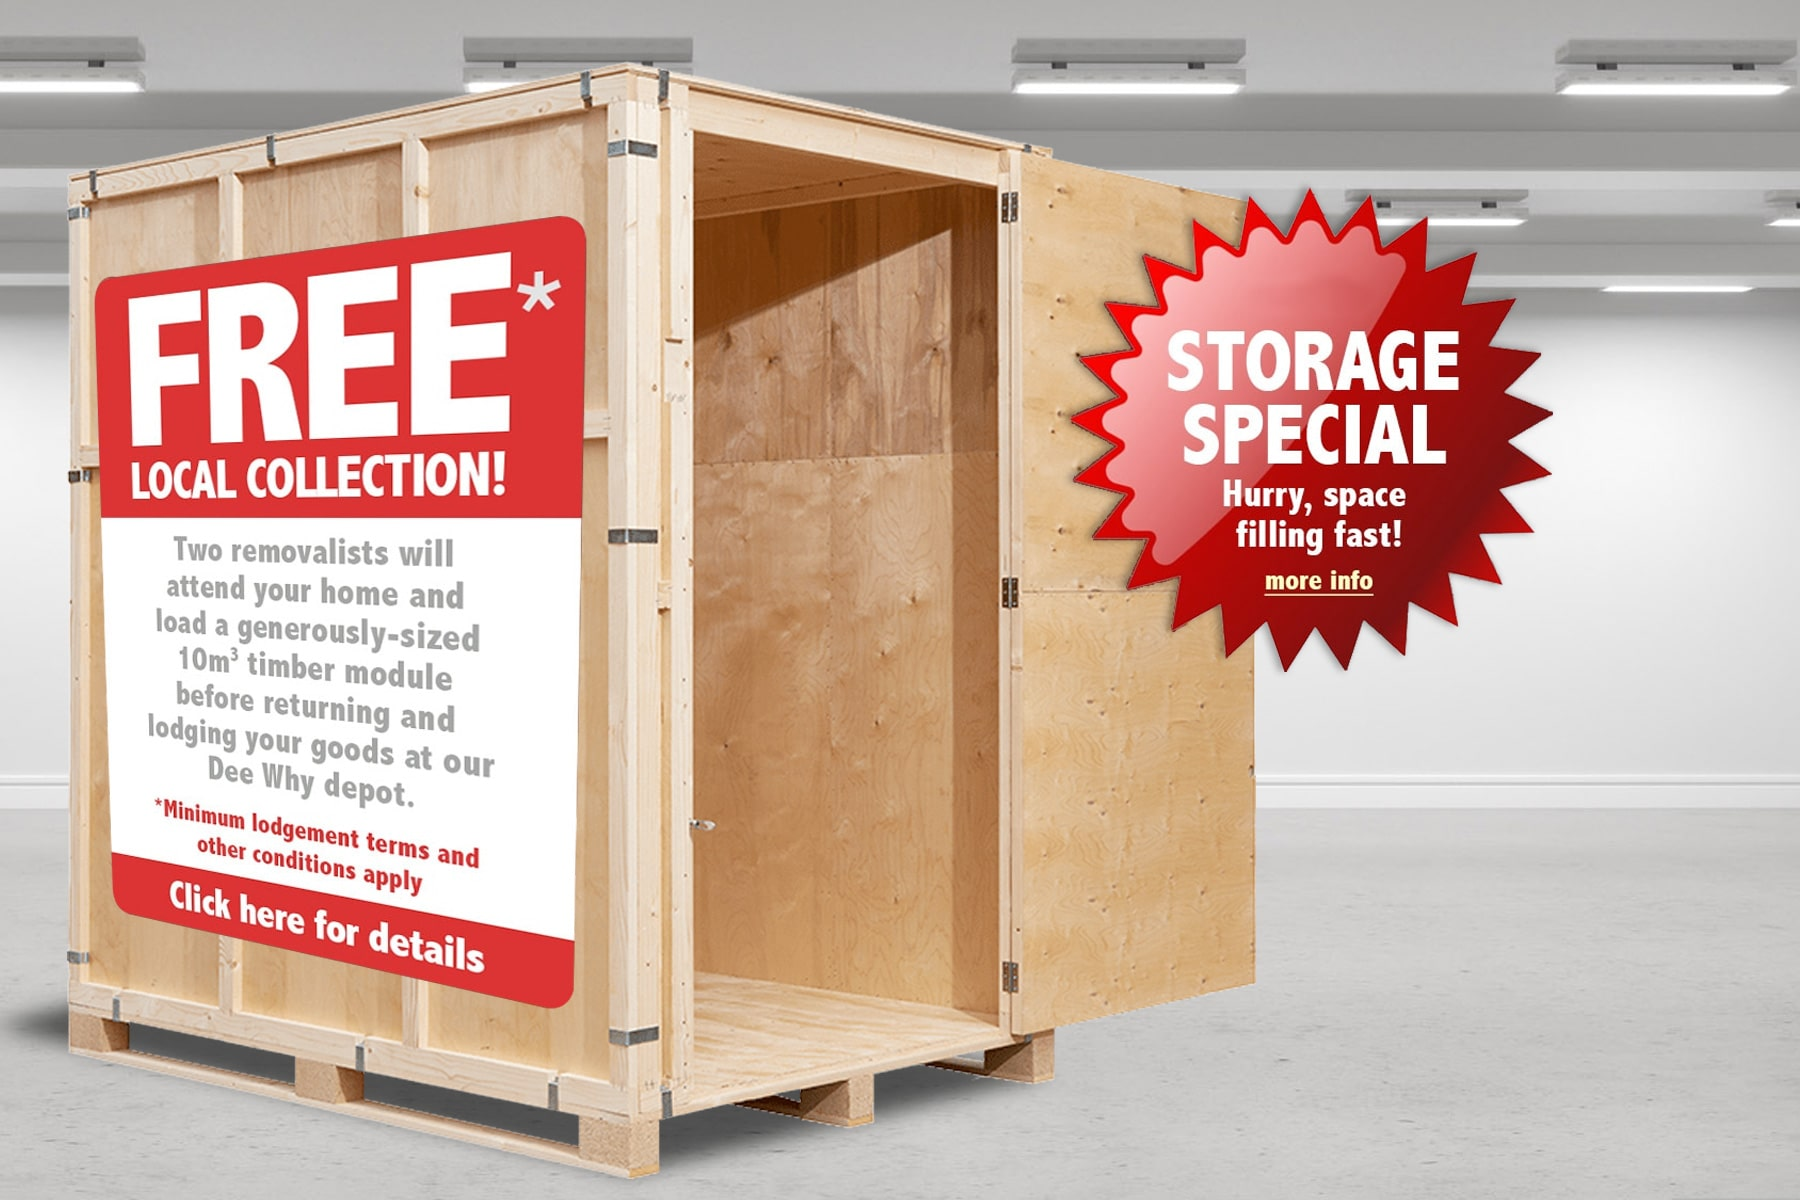 2019 Self-Storage Special Offer - Free Northern Beaches Collection!